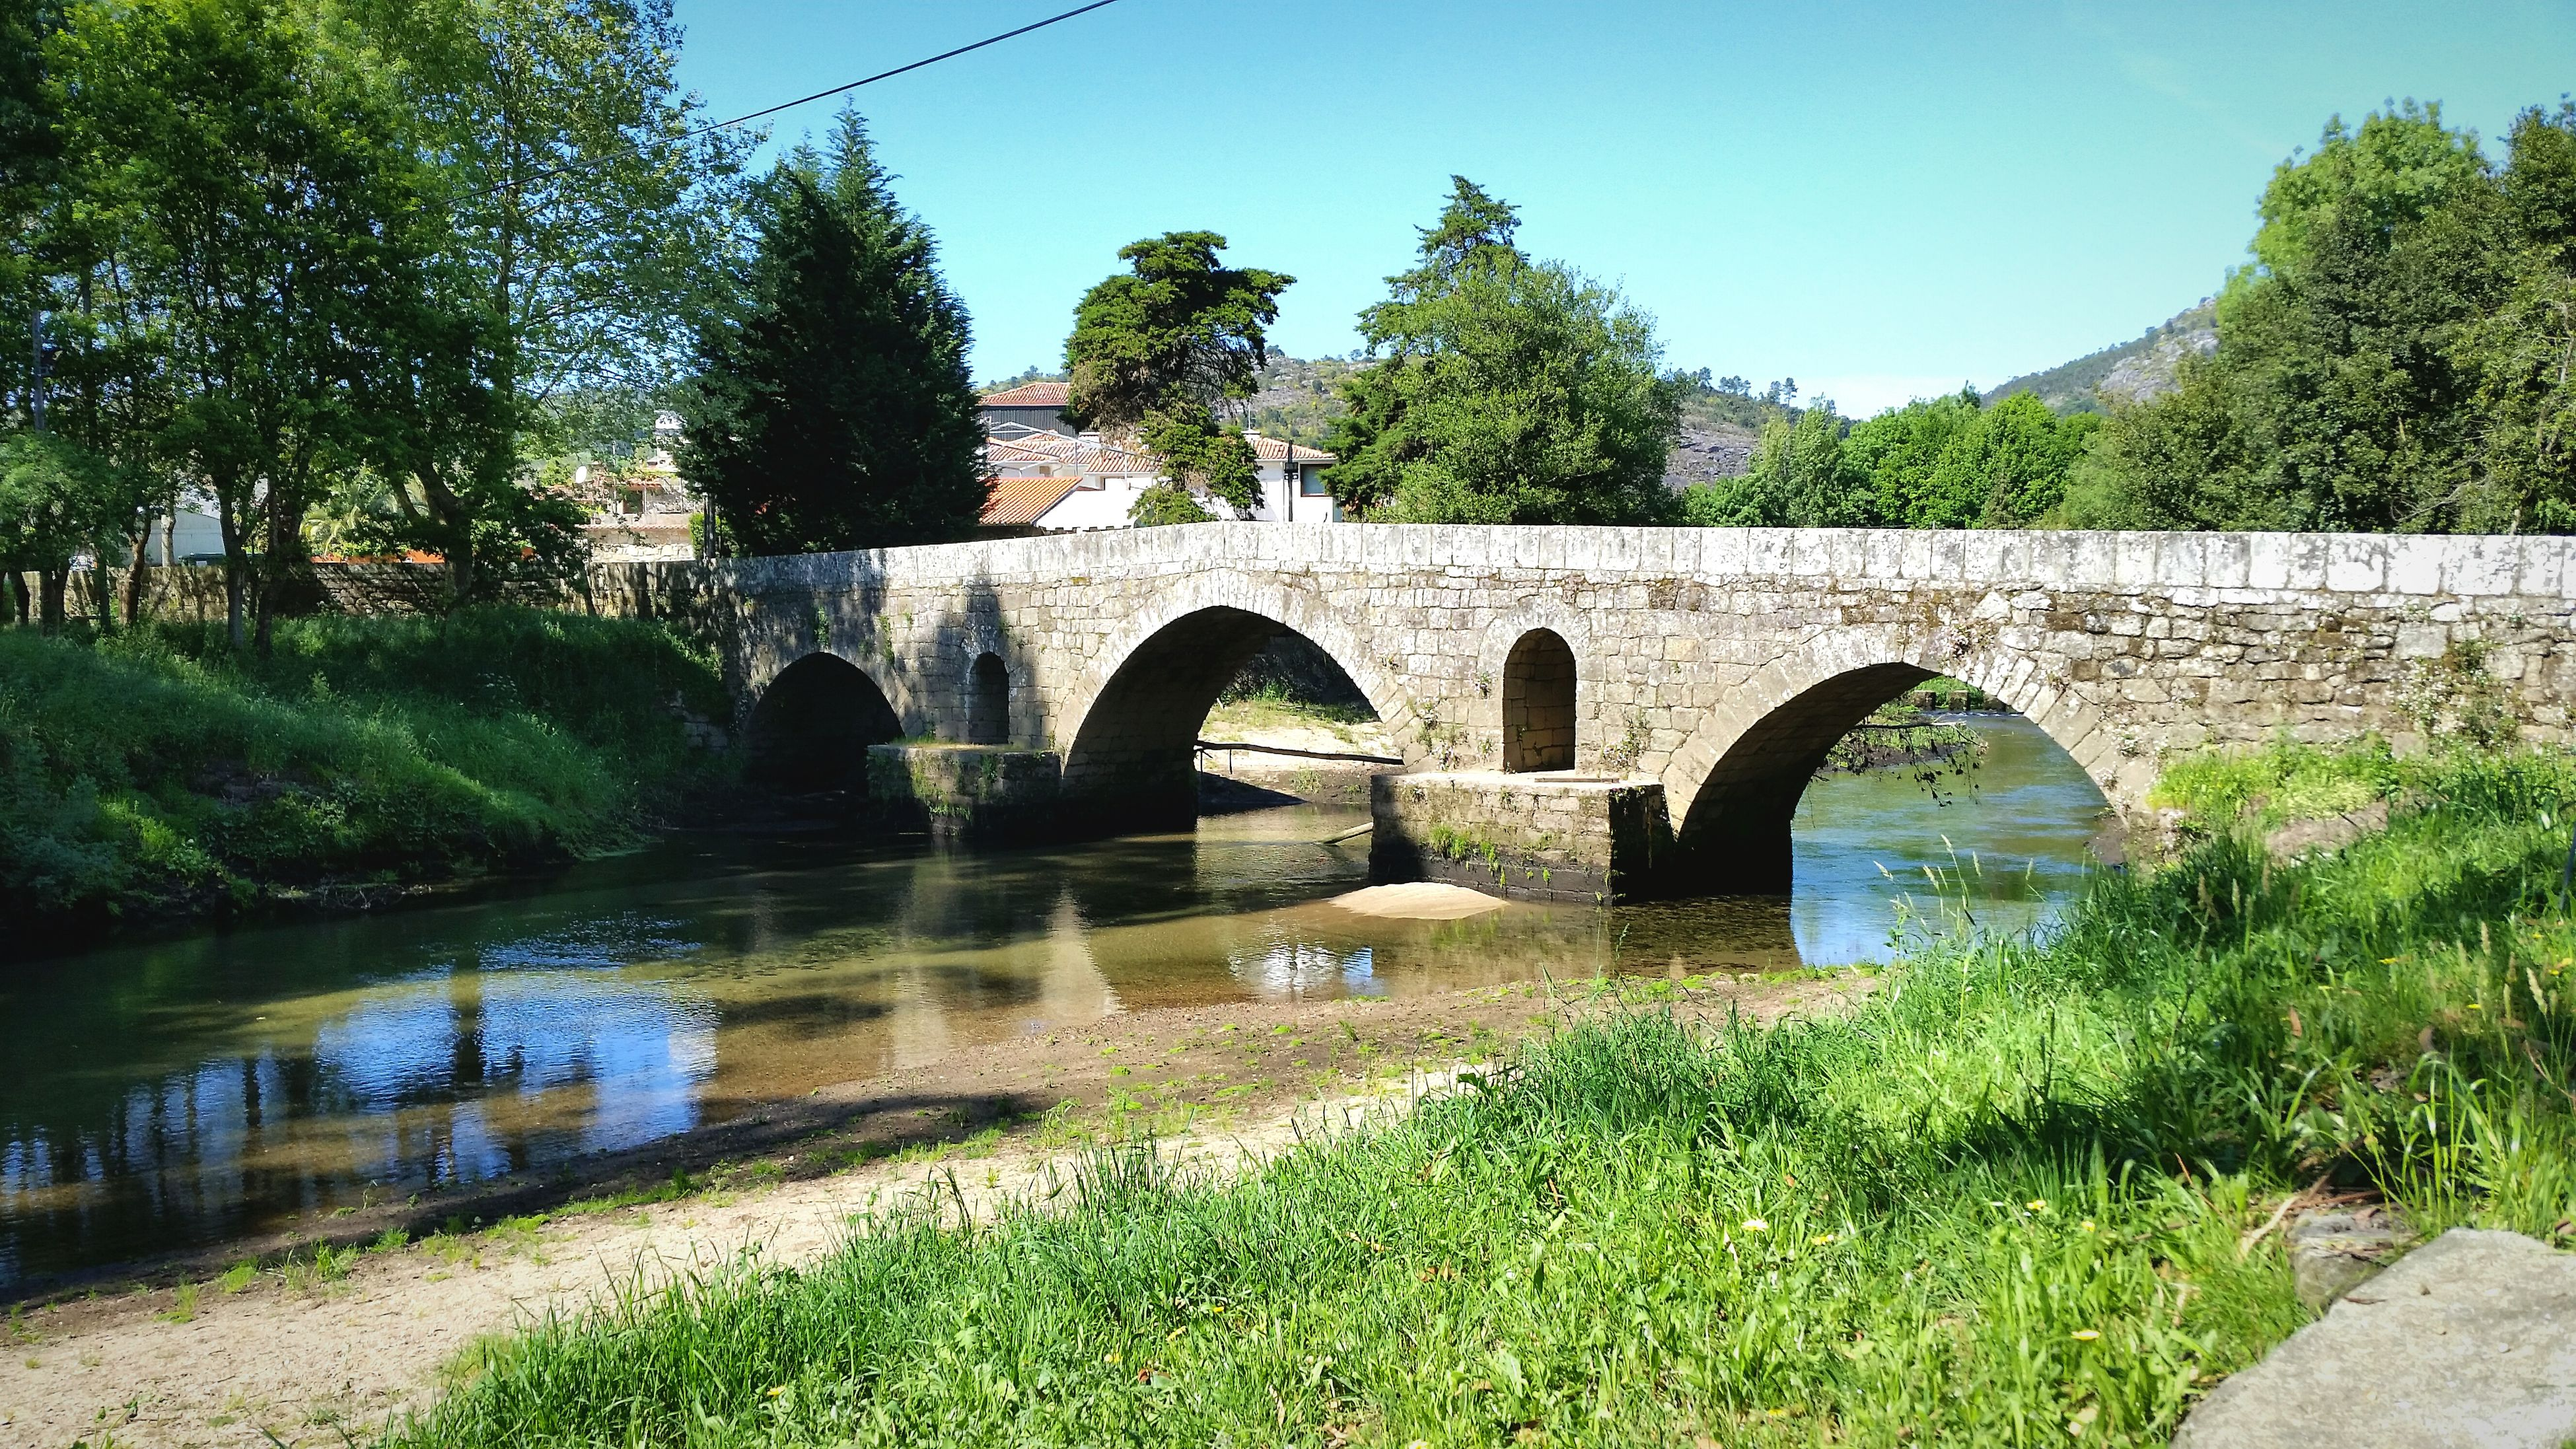 bridge - man made structure, arch bridge, arch, connection, architecture, tree, built structure, water, river, growth, transportation, reflection, day, outdoors, nature, covered bridge, no people, plant, sky, grass, beauty in nature